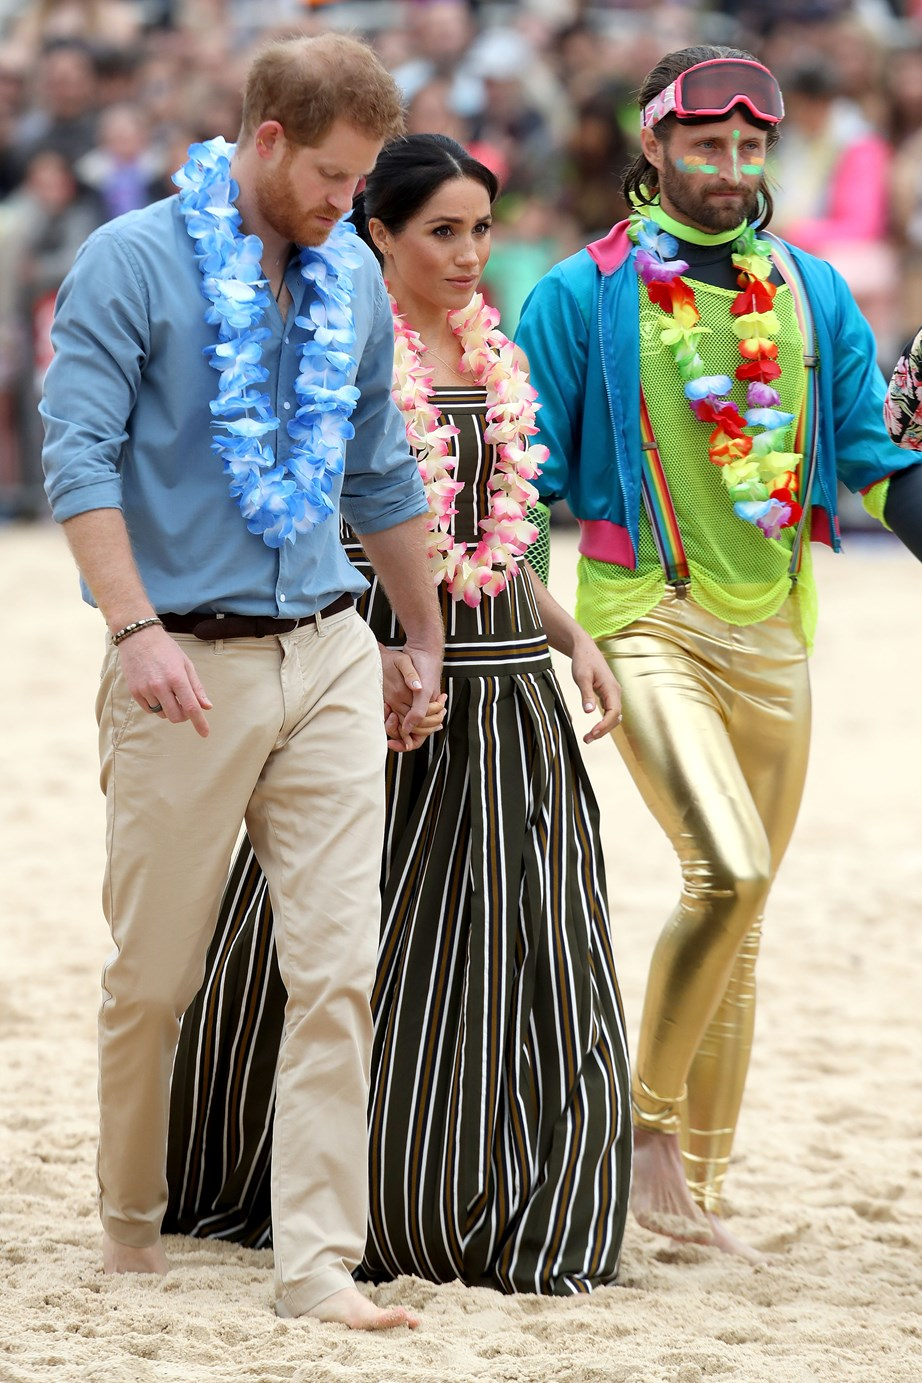 Lei's were also necessary for both royals upon arrival.